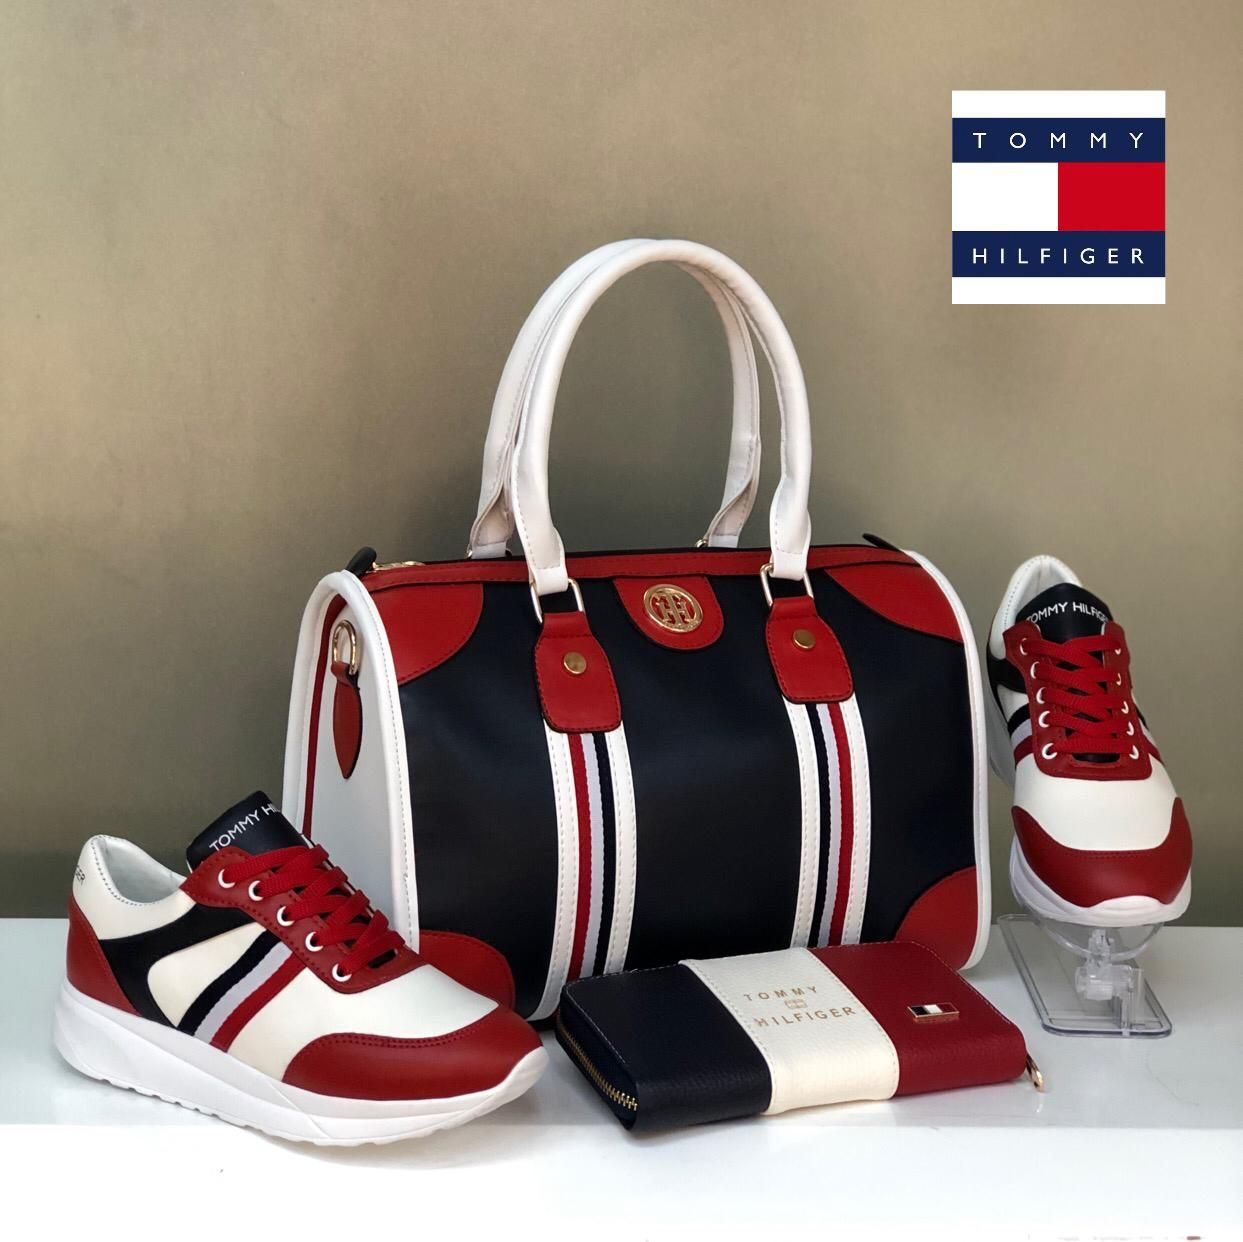 Tommy Classic Set Parihil Collections With Images Tommy